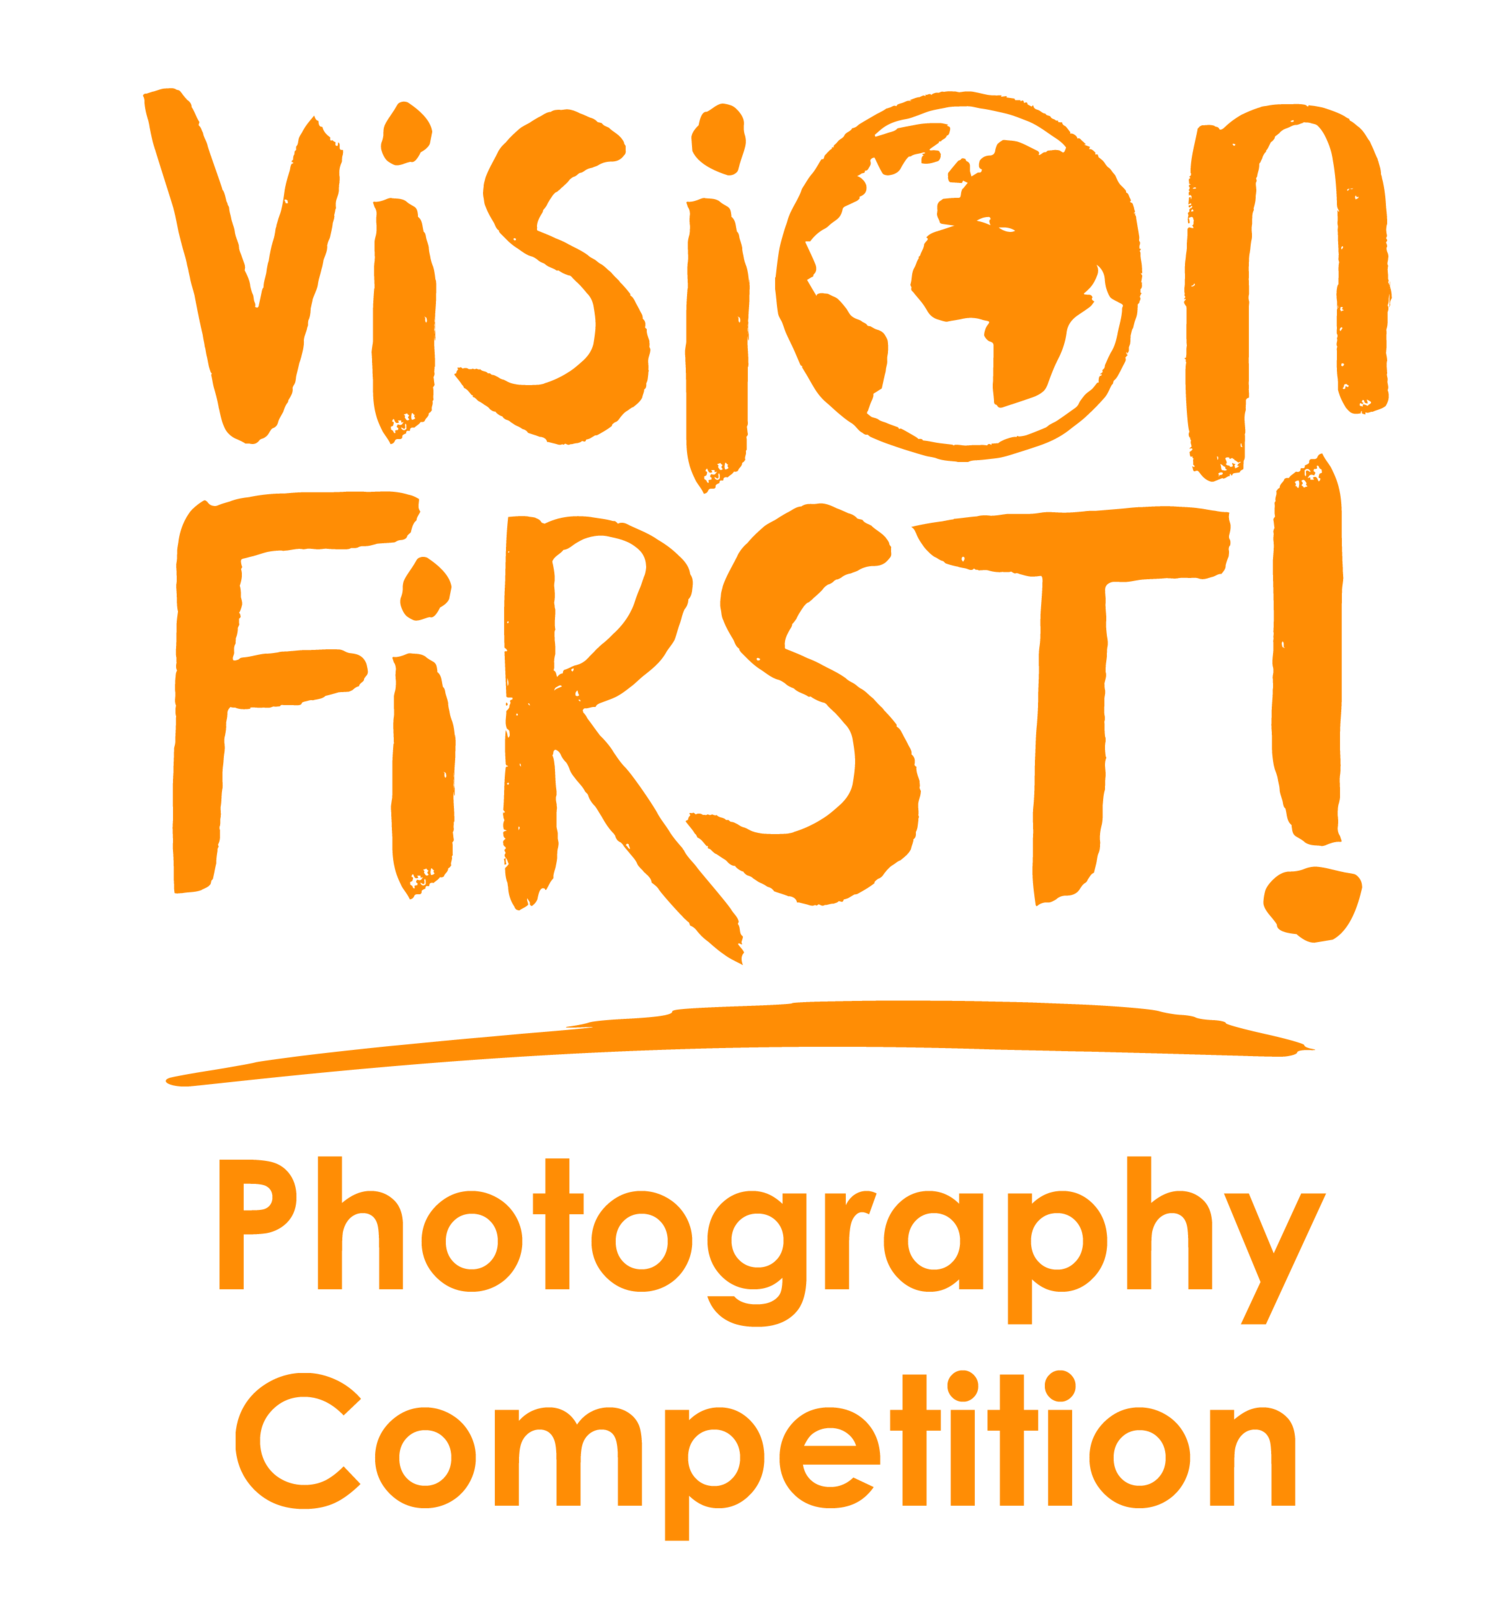 Vision First! Photo Competition